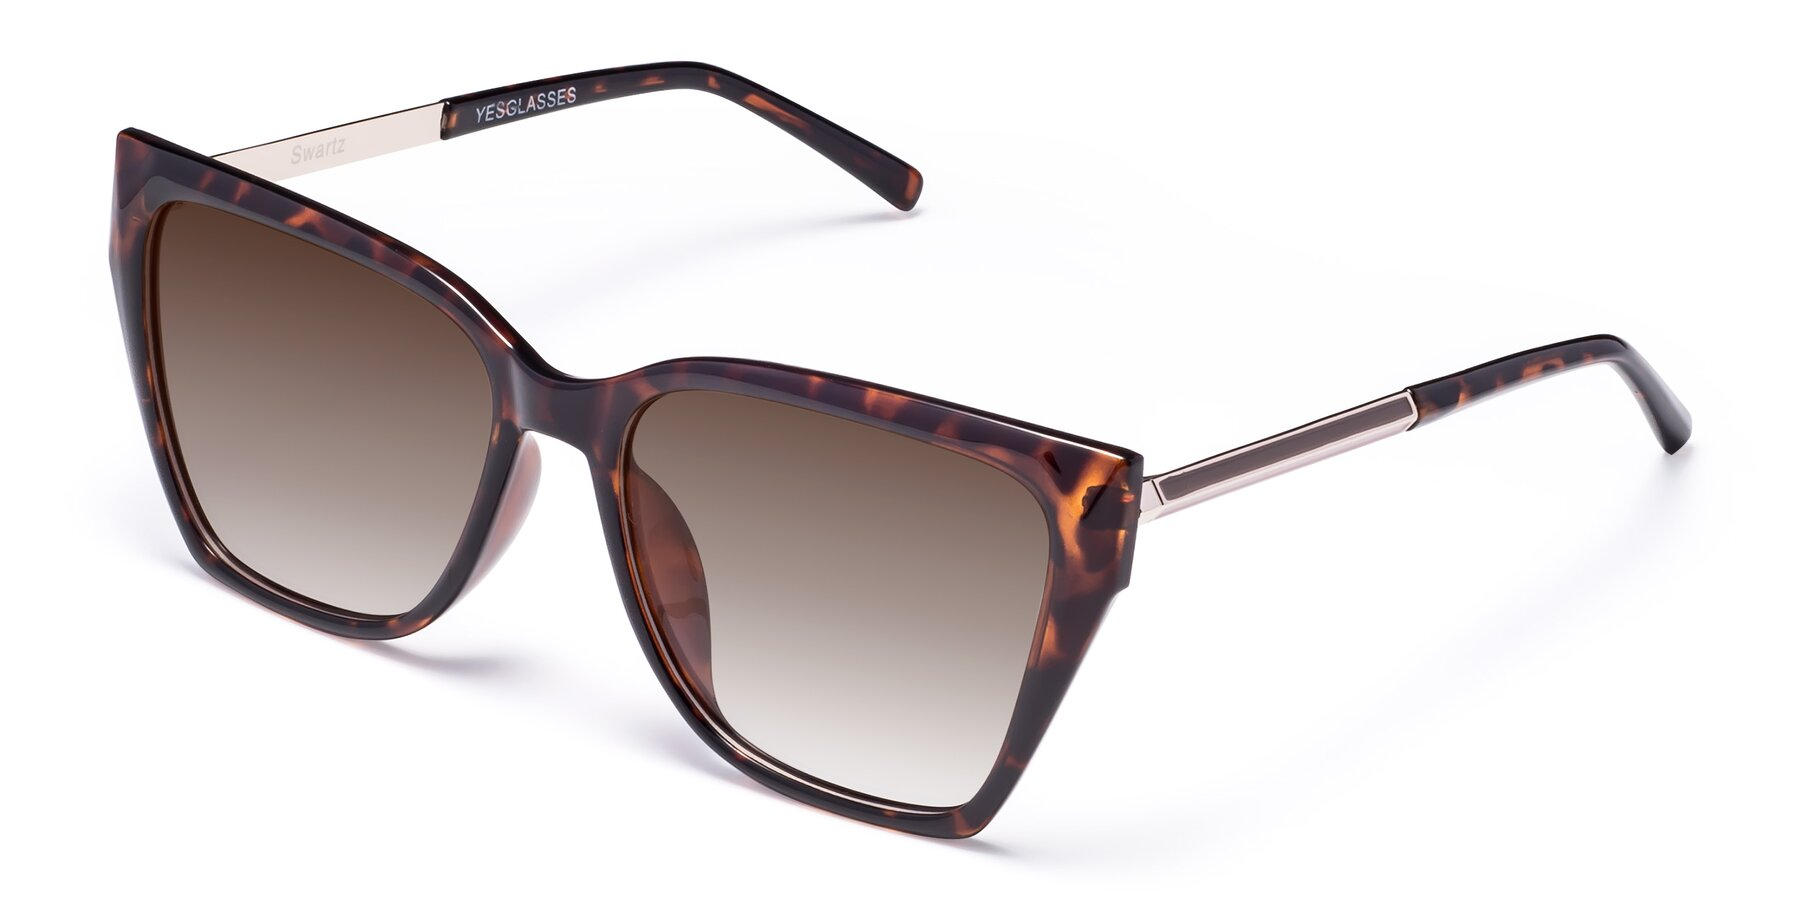 Angle of Swartz in Tortoise with Brown Gradient Lenses